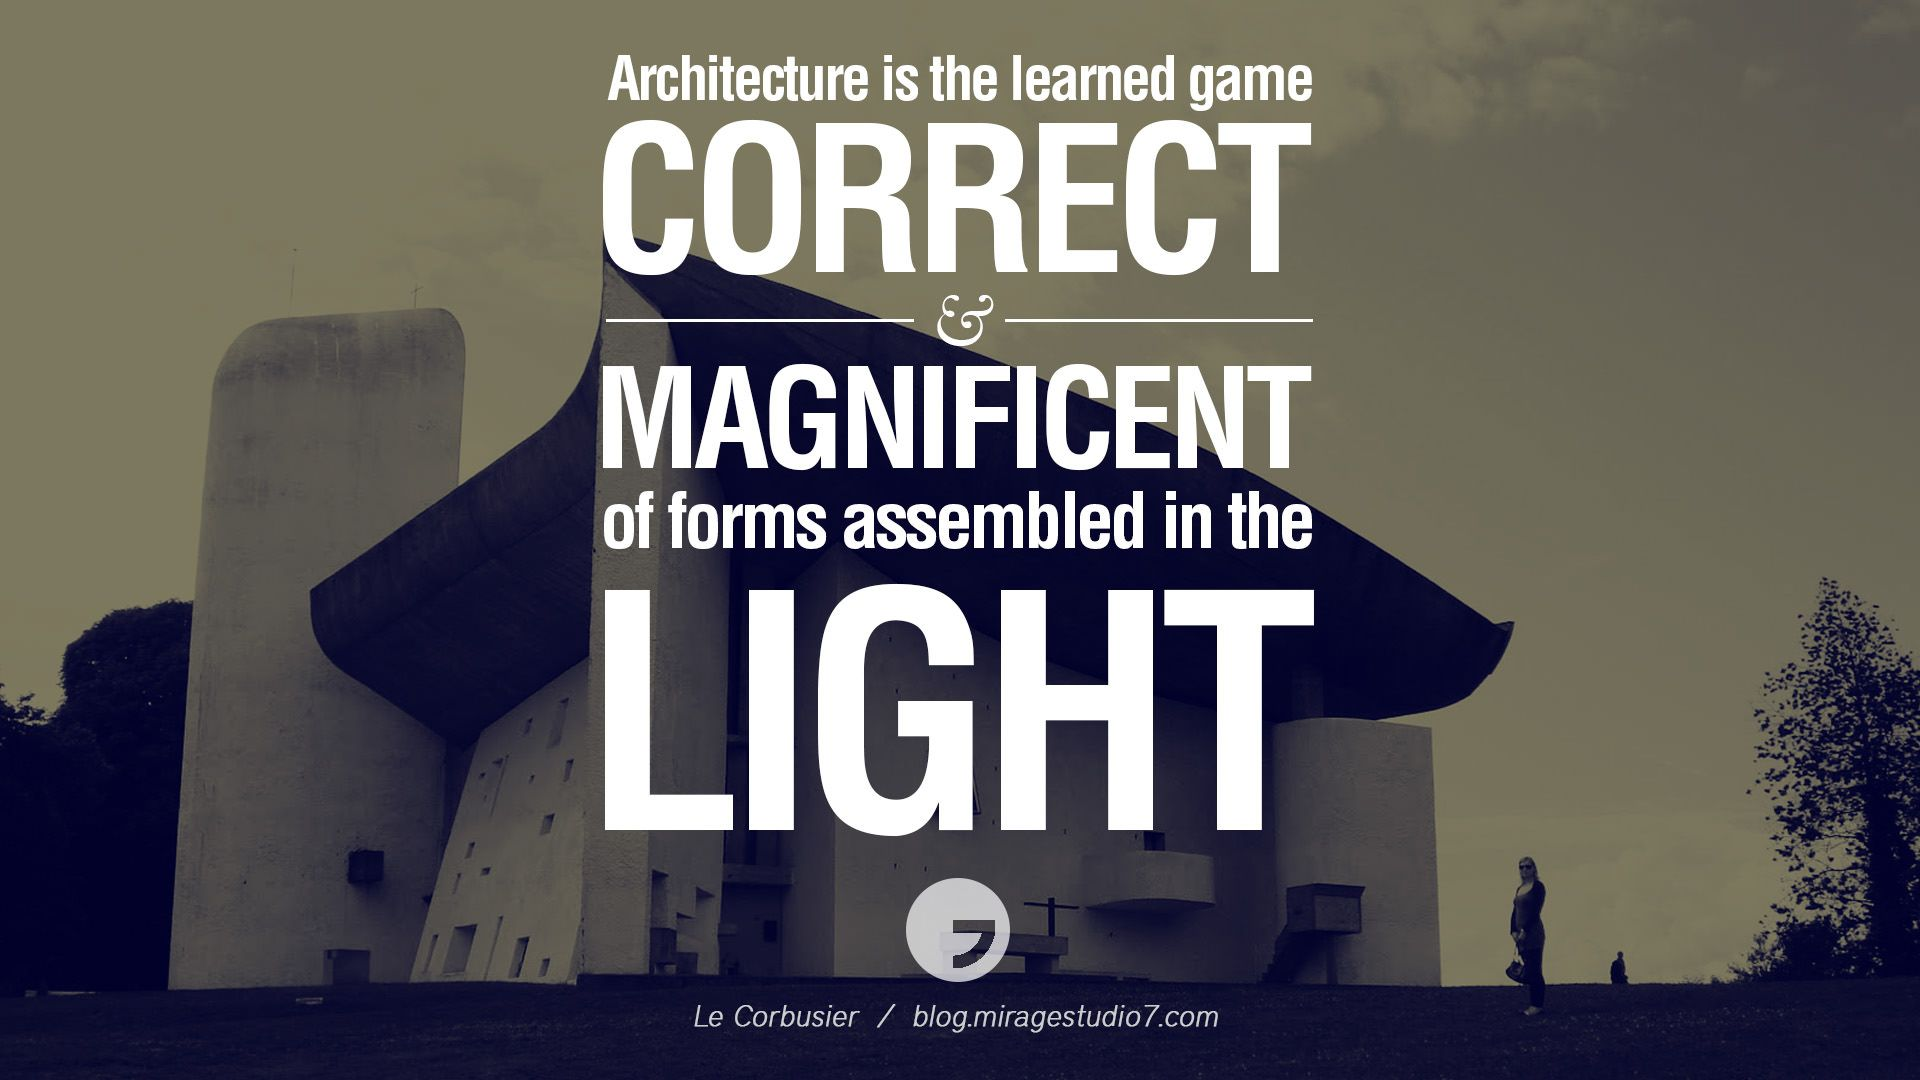 Charmant 28 Inspirational Architecture Quotes By Famous Architects And Interior  Designers